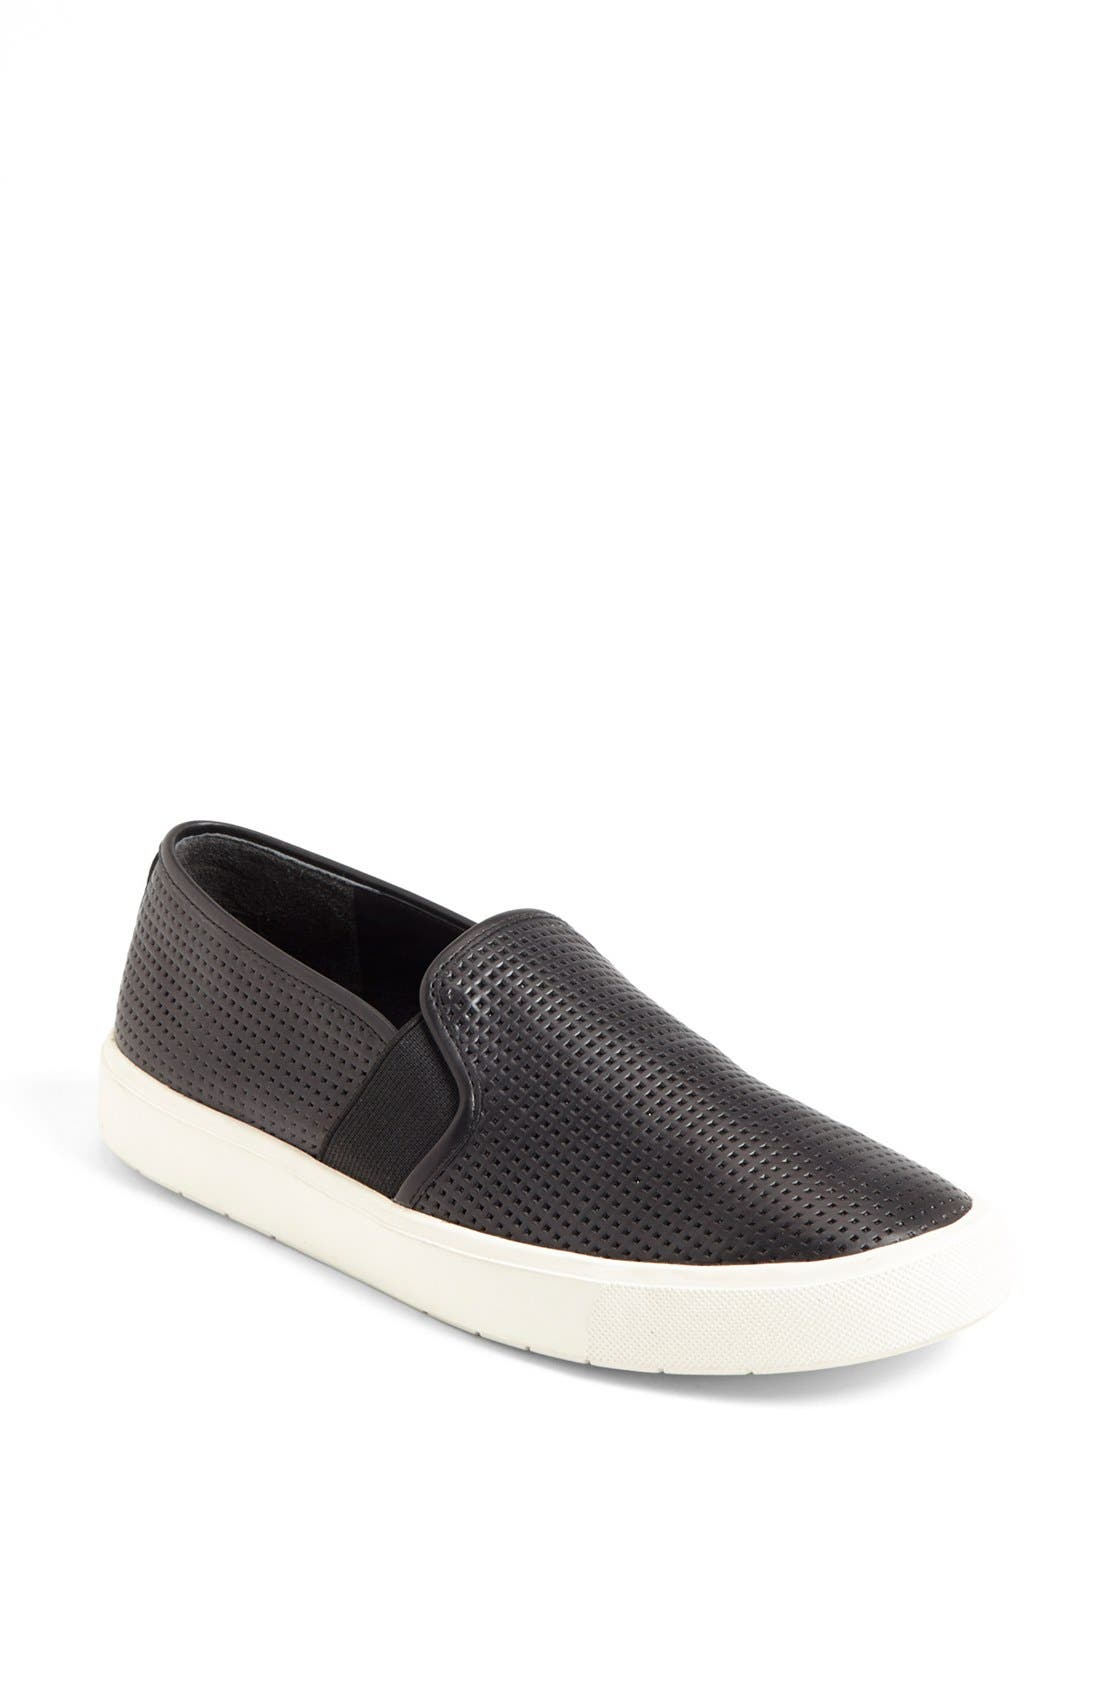 Main Image - Vince Blair 5 Slip-On Sneaker (Women)